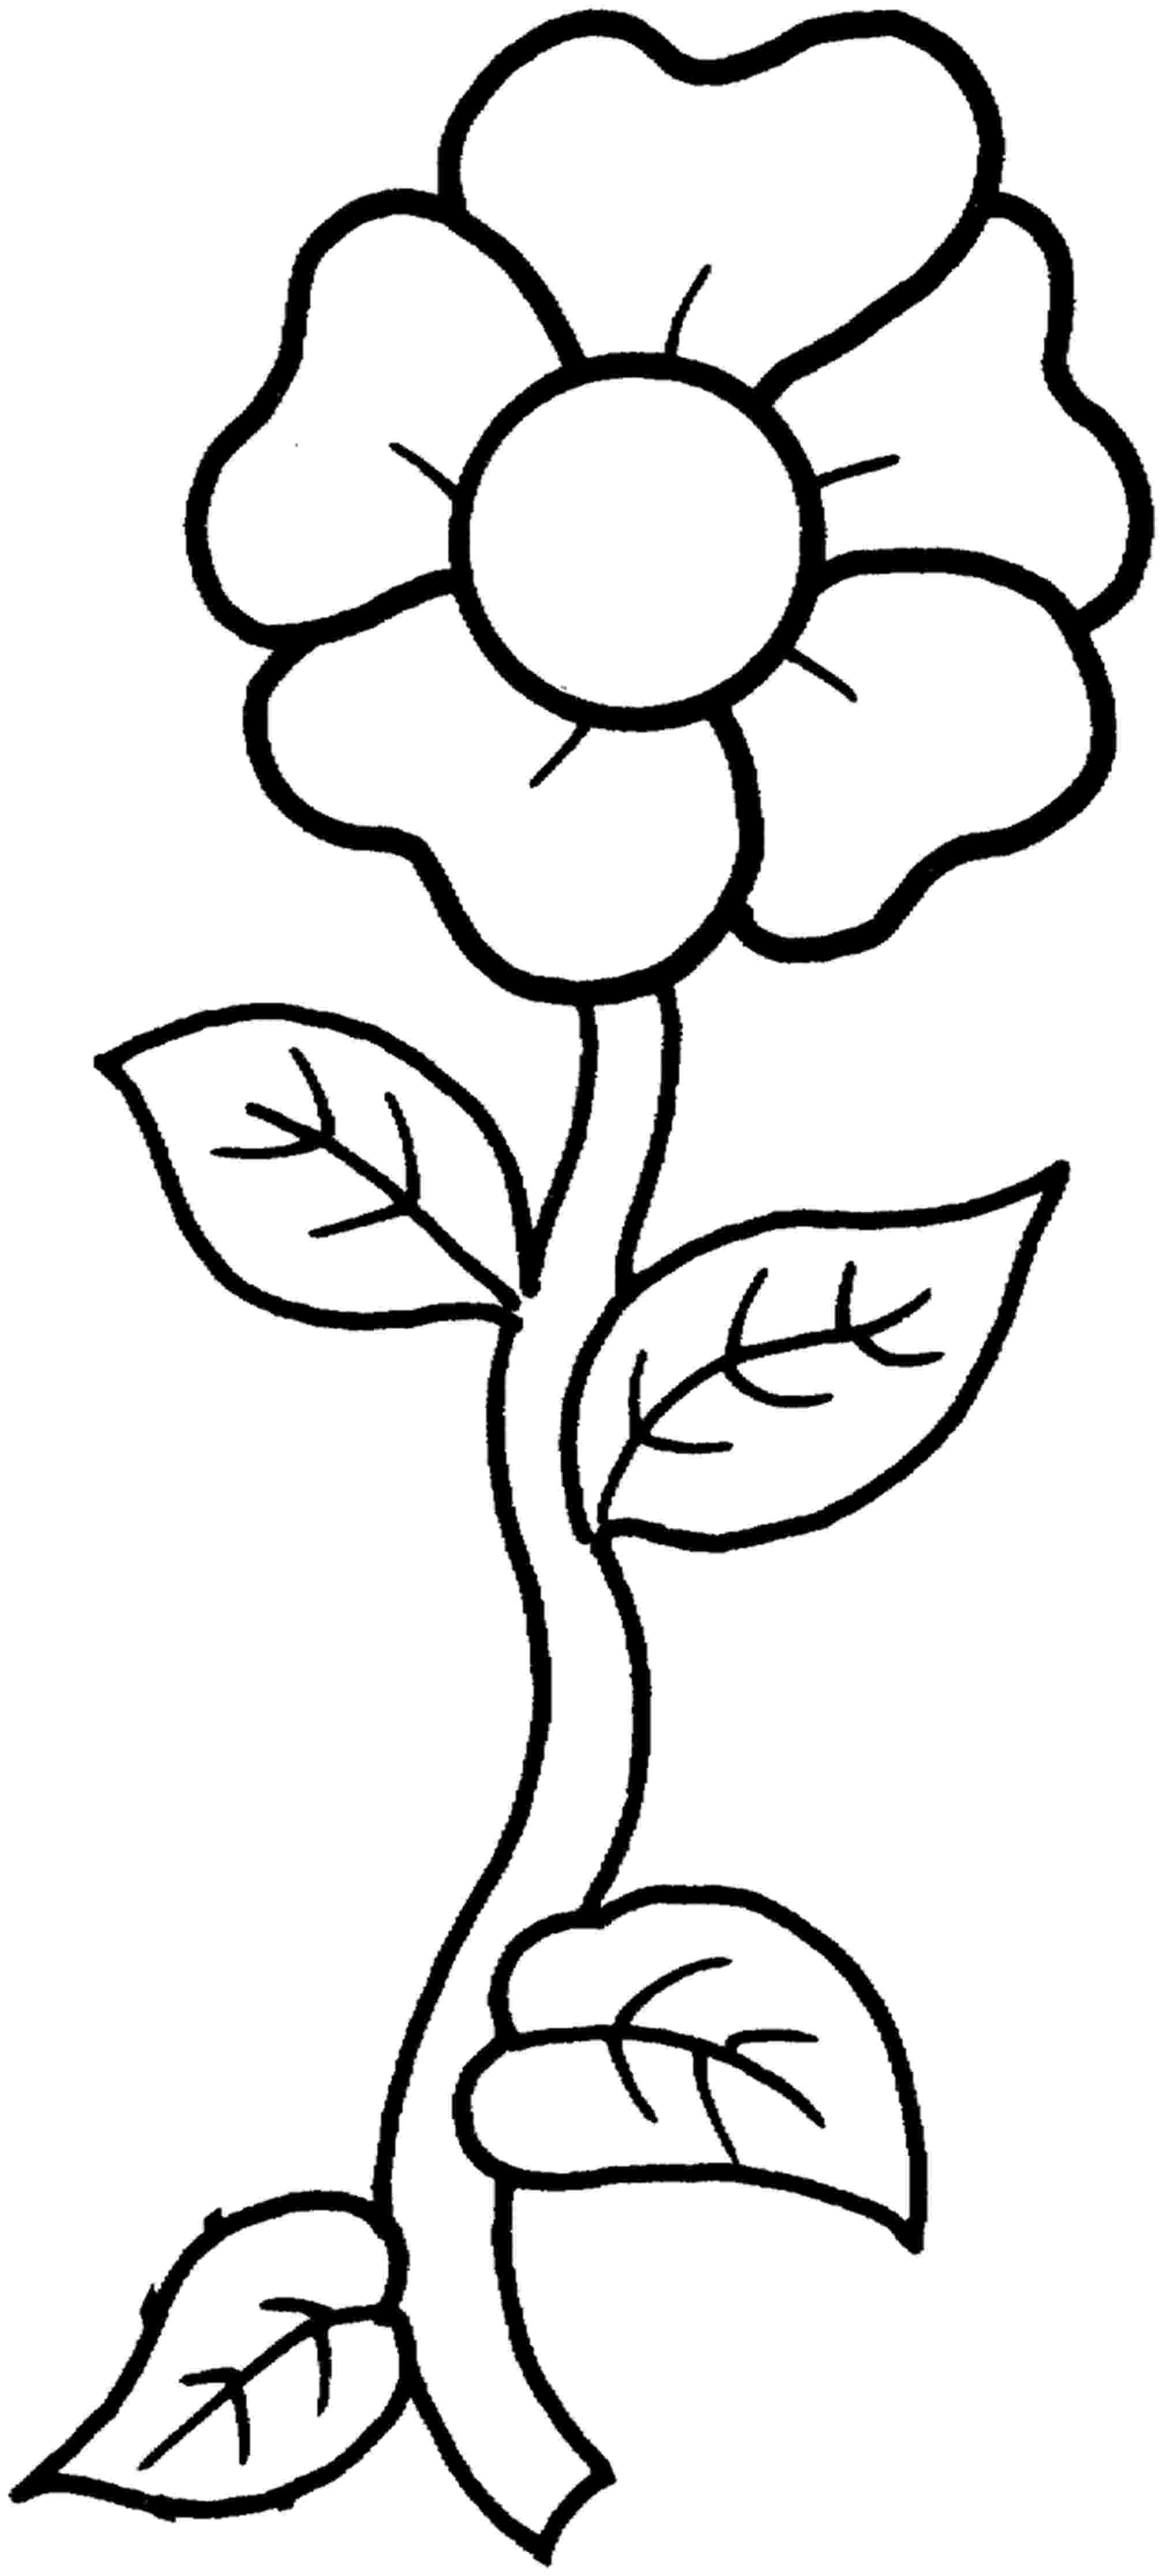 pictures of flowers to color free printables free printable flower coloring pages for kids cool2bkids pictures flowers to free of printables color